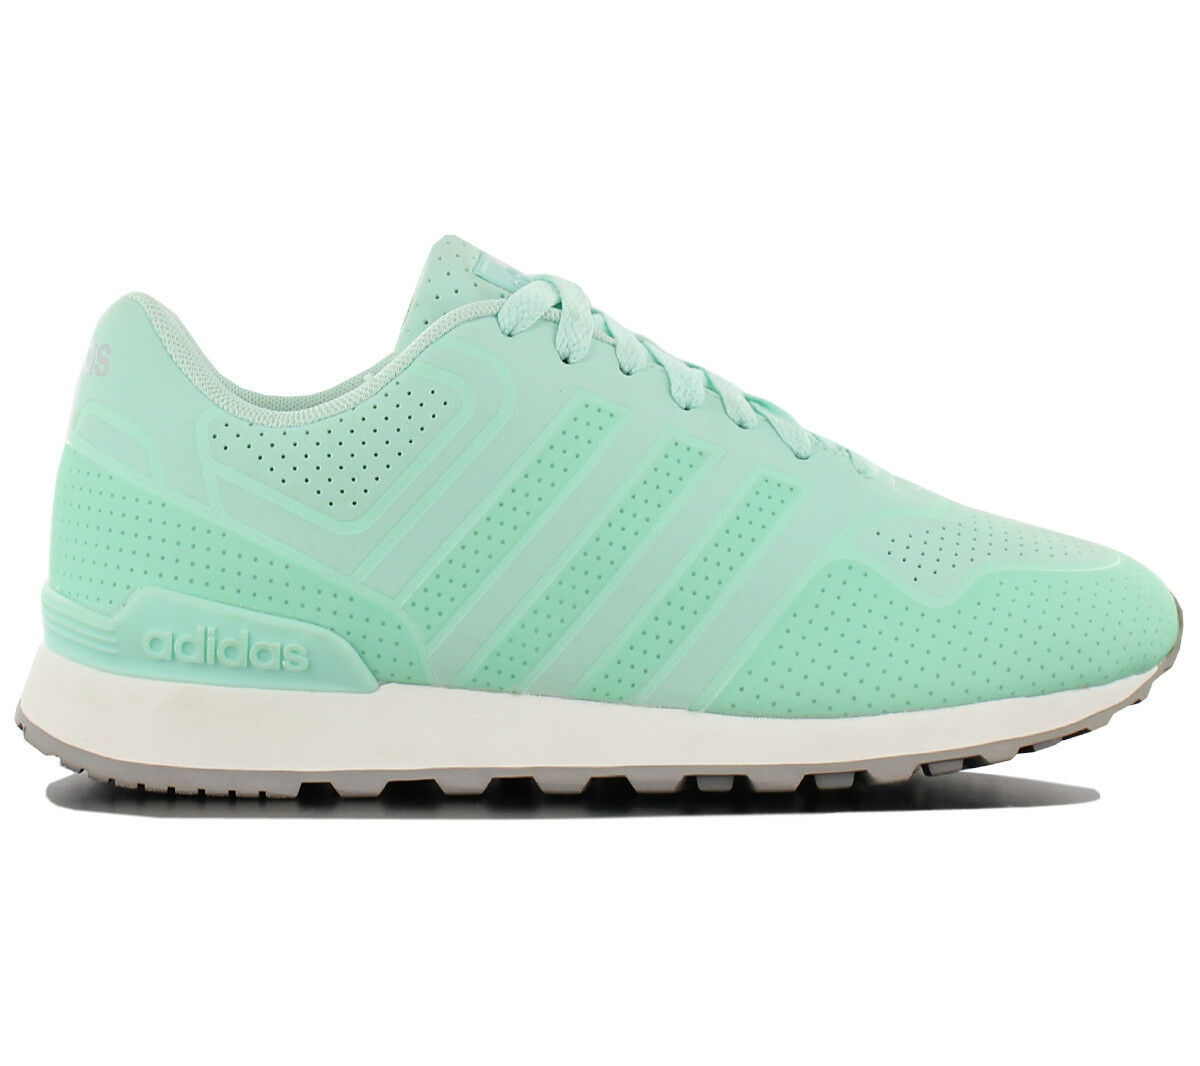 Adidas 10K Casual W Women's Sneakers Fashion shoes Mint-Green Trainers AW5178